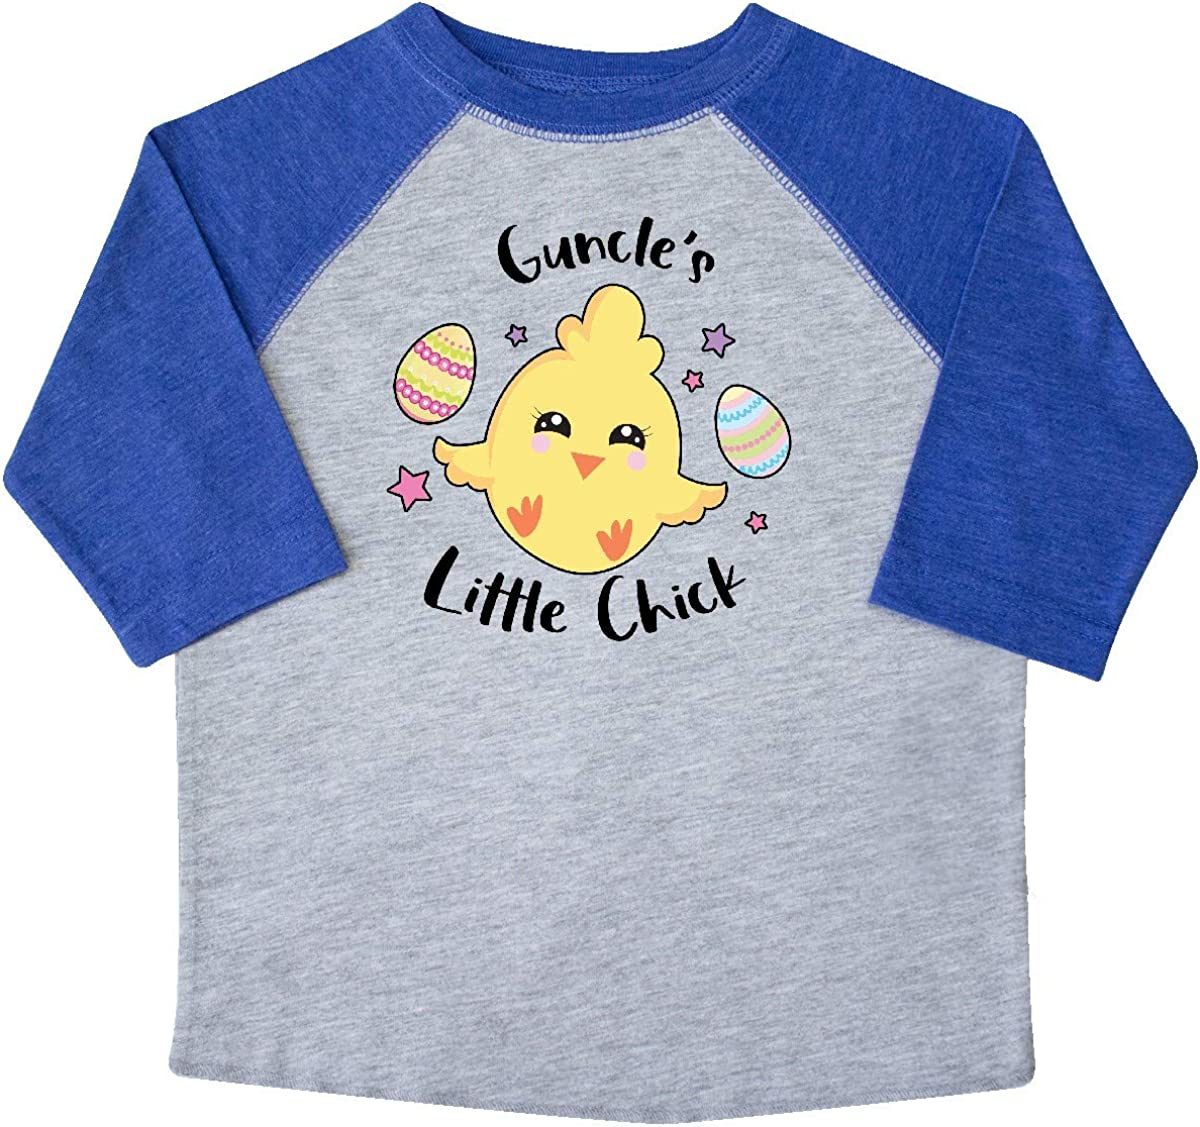 inktastic Happy Easter Guncles Little Chick Toddler T-Shirt